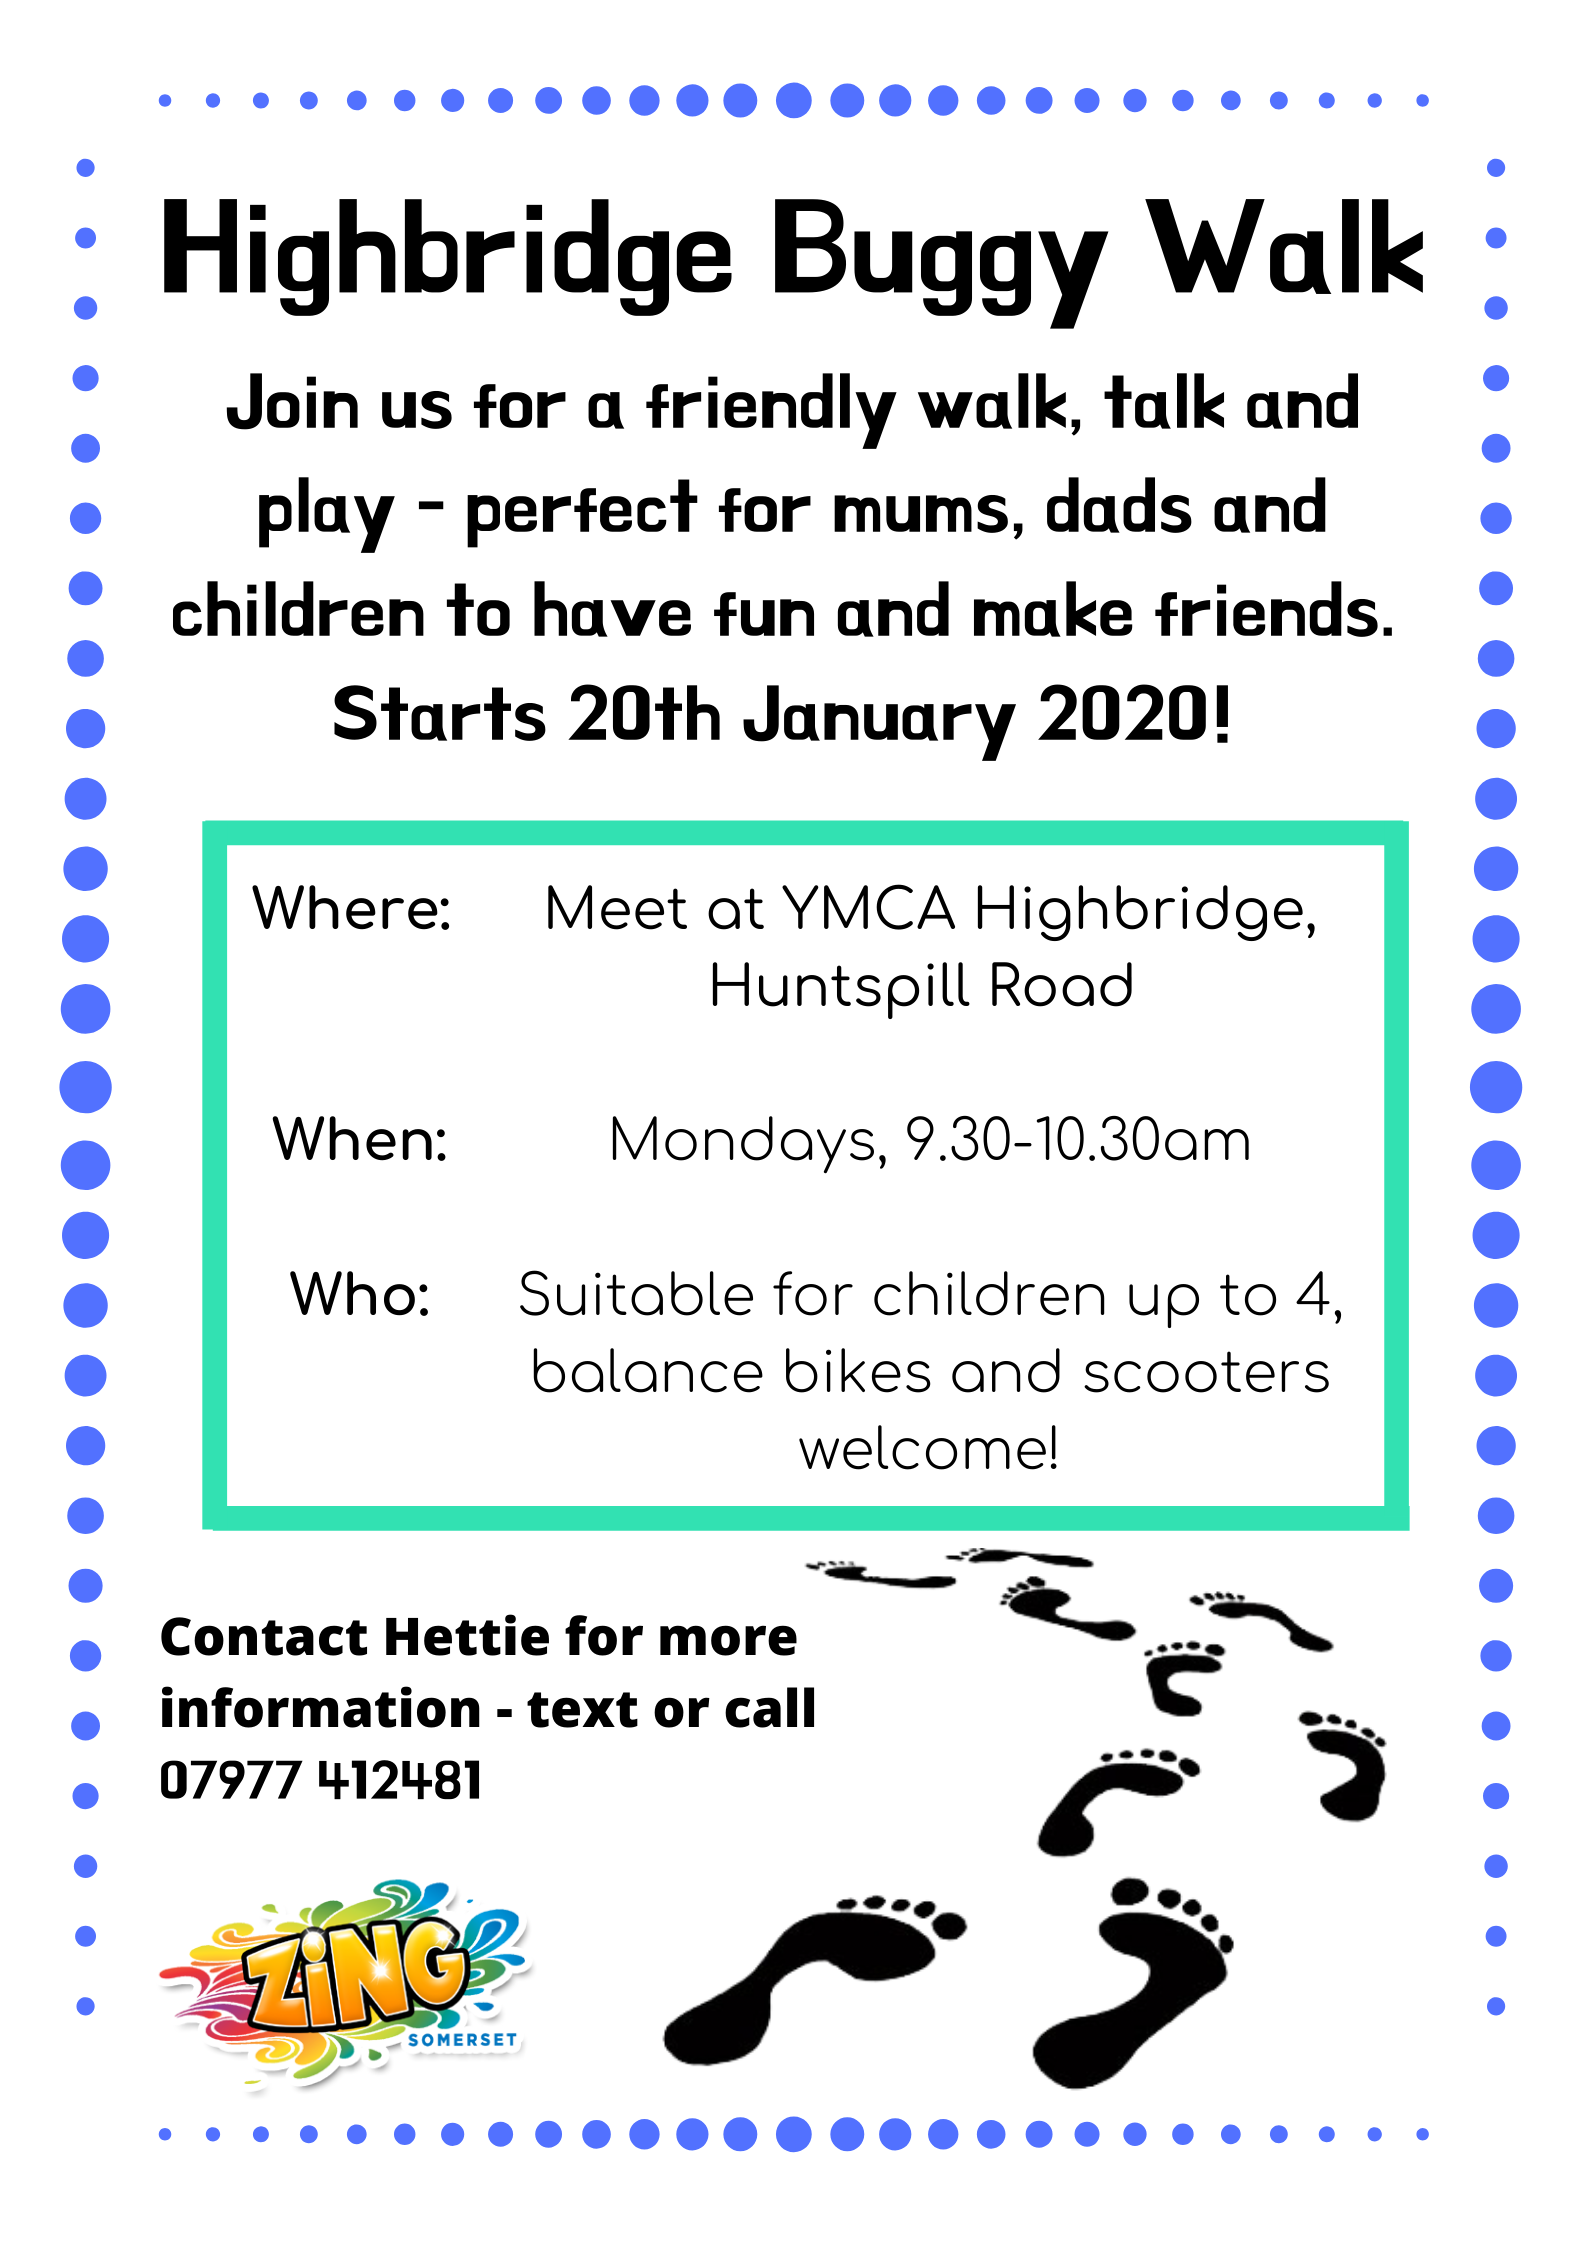 A new Buggy walk group